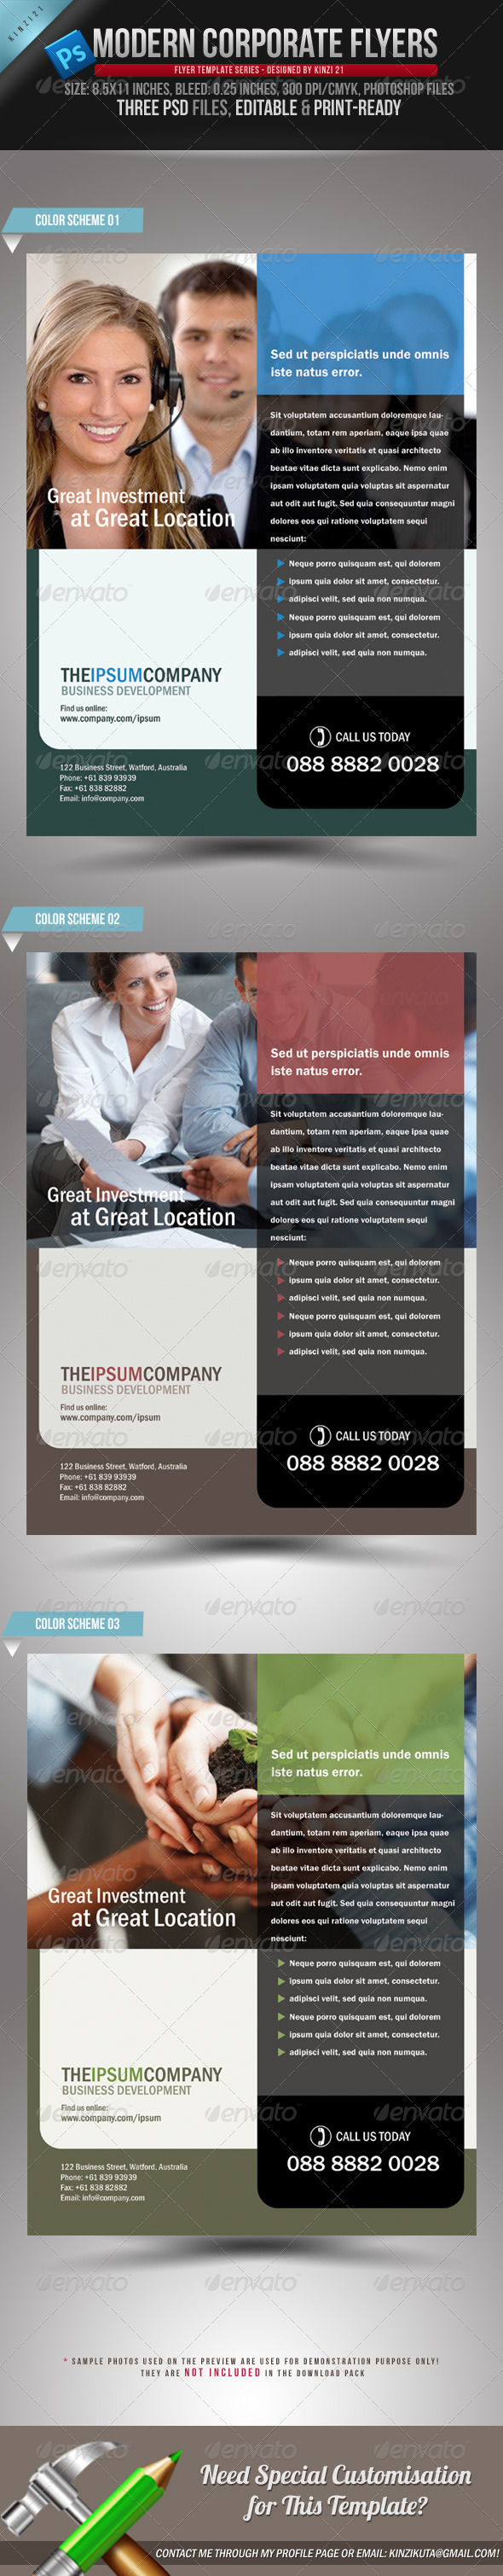 Modern Corporate Flyers - Corporate Flyers